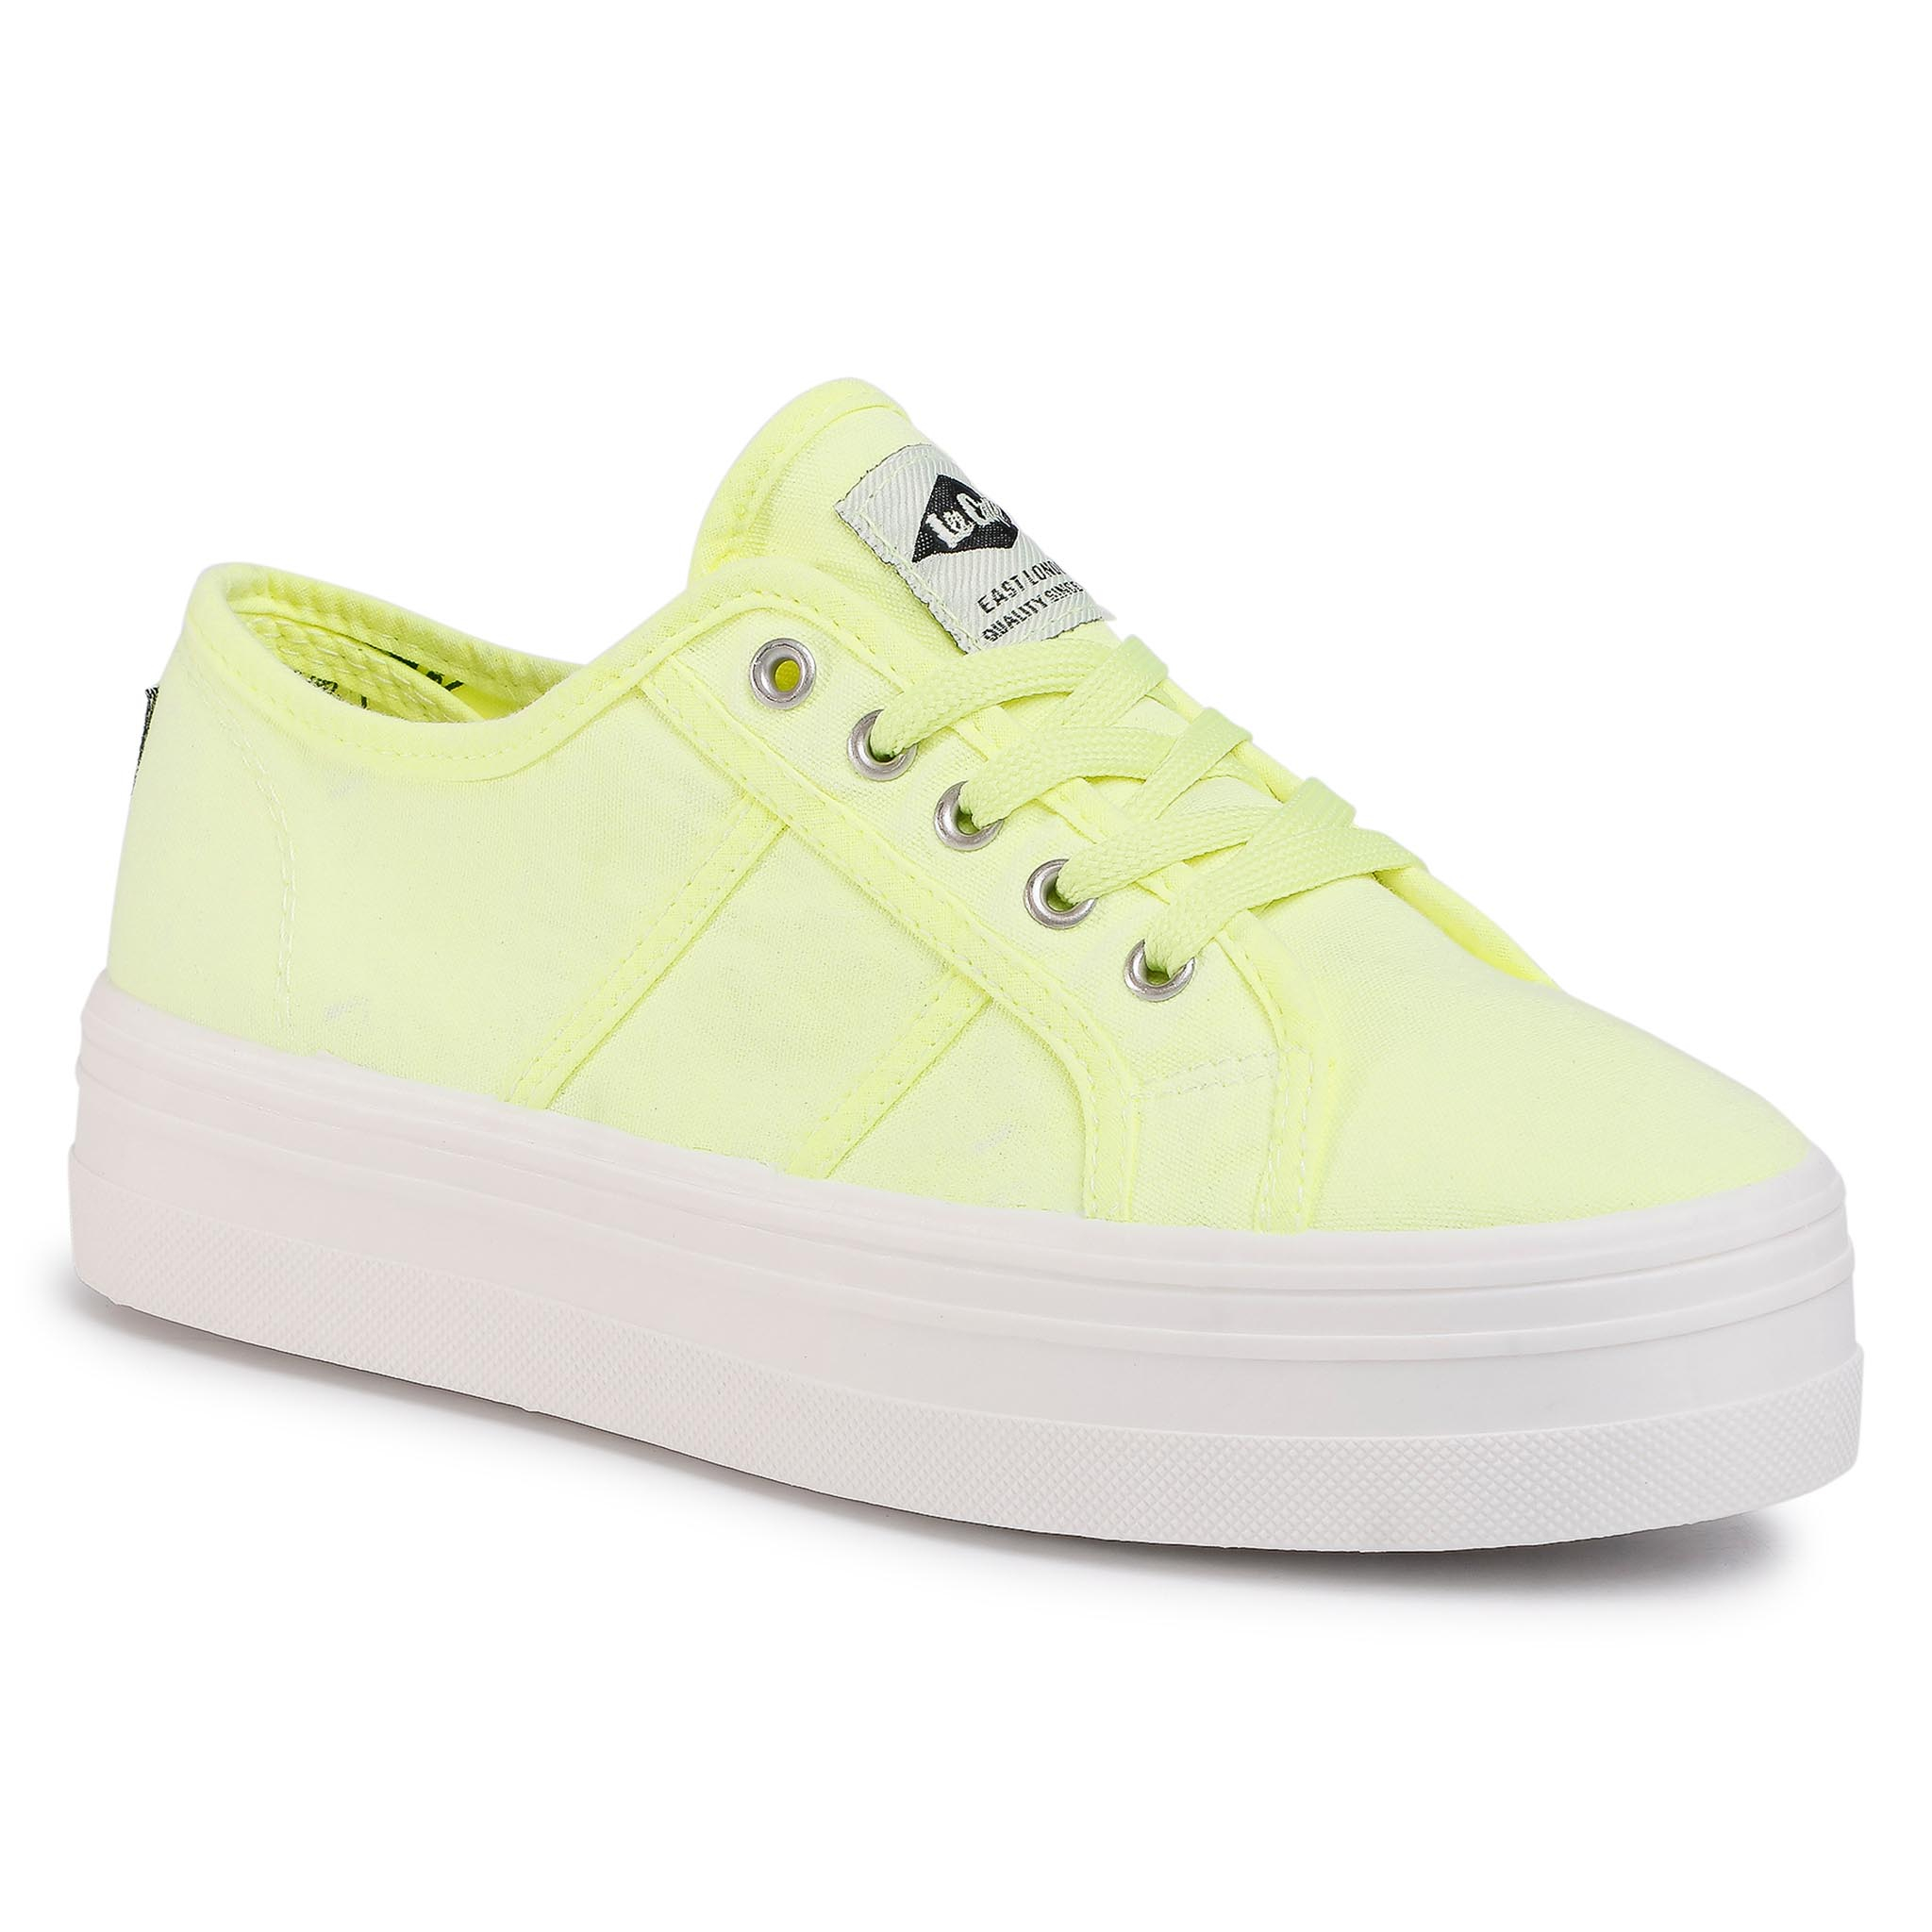 Tennis LEE COOPER - LCWL-20-30-032 Lemon Green